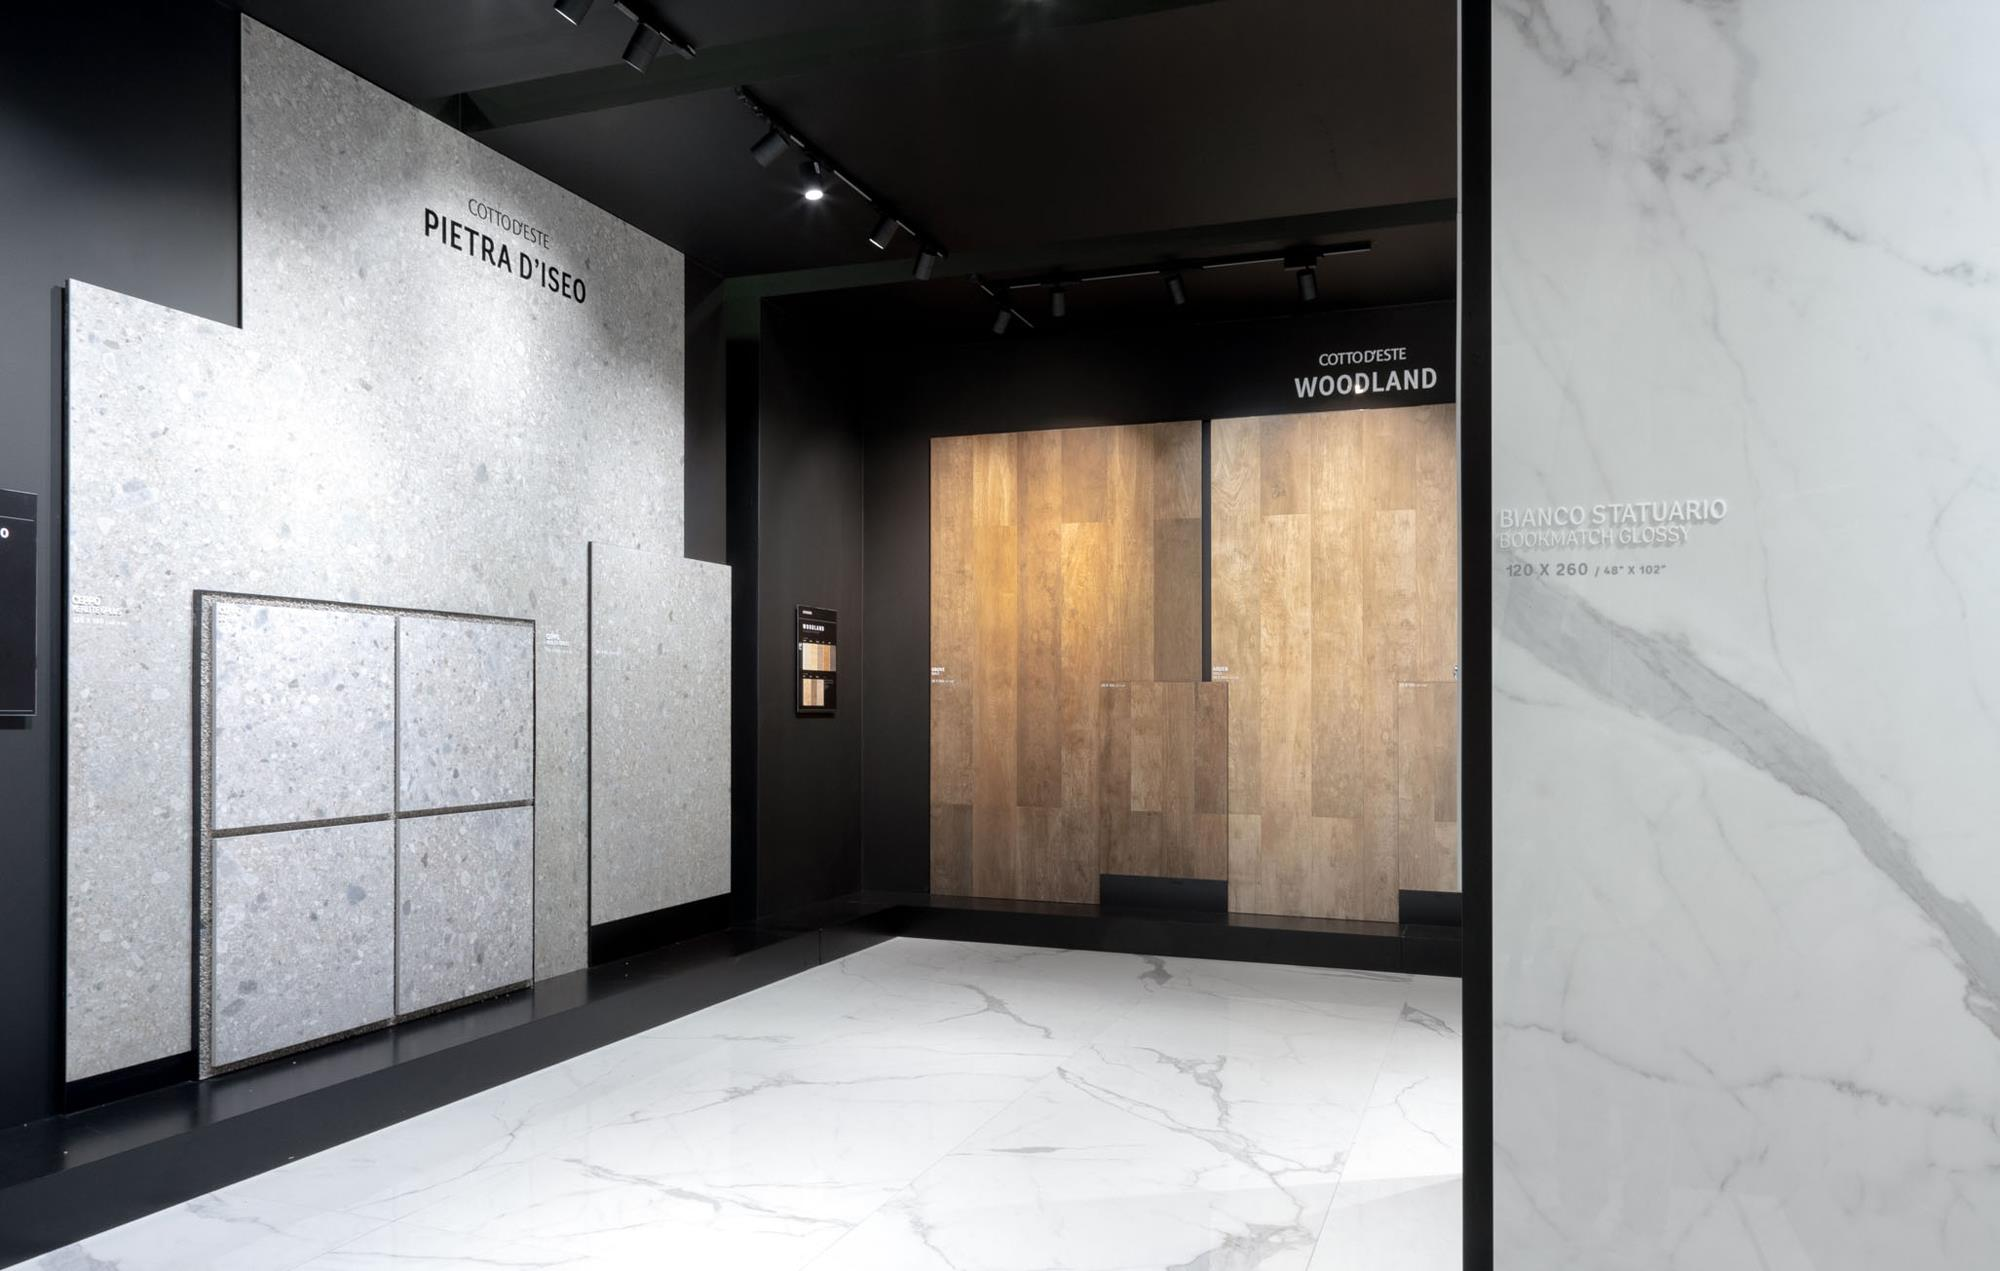 Cersaie 2018, Cotto d'Este takes ceramics to a new level: Photo 9